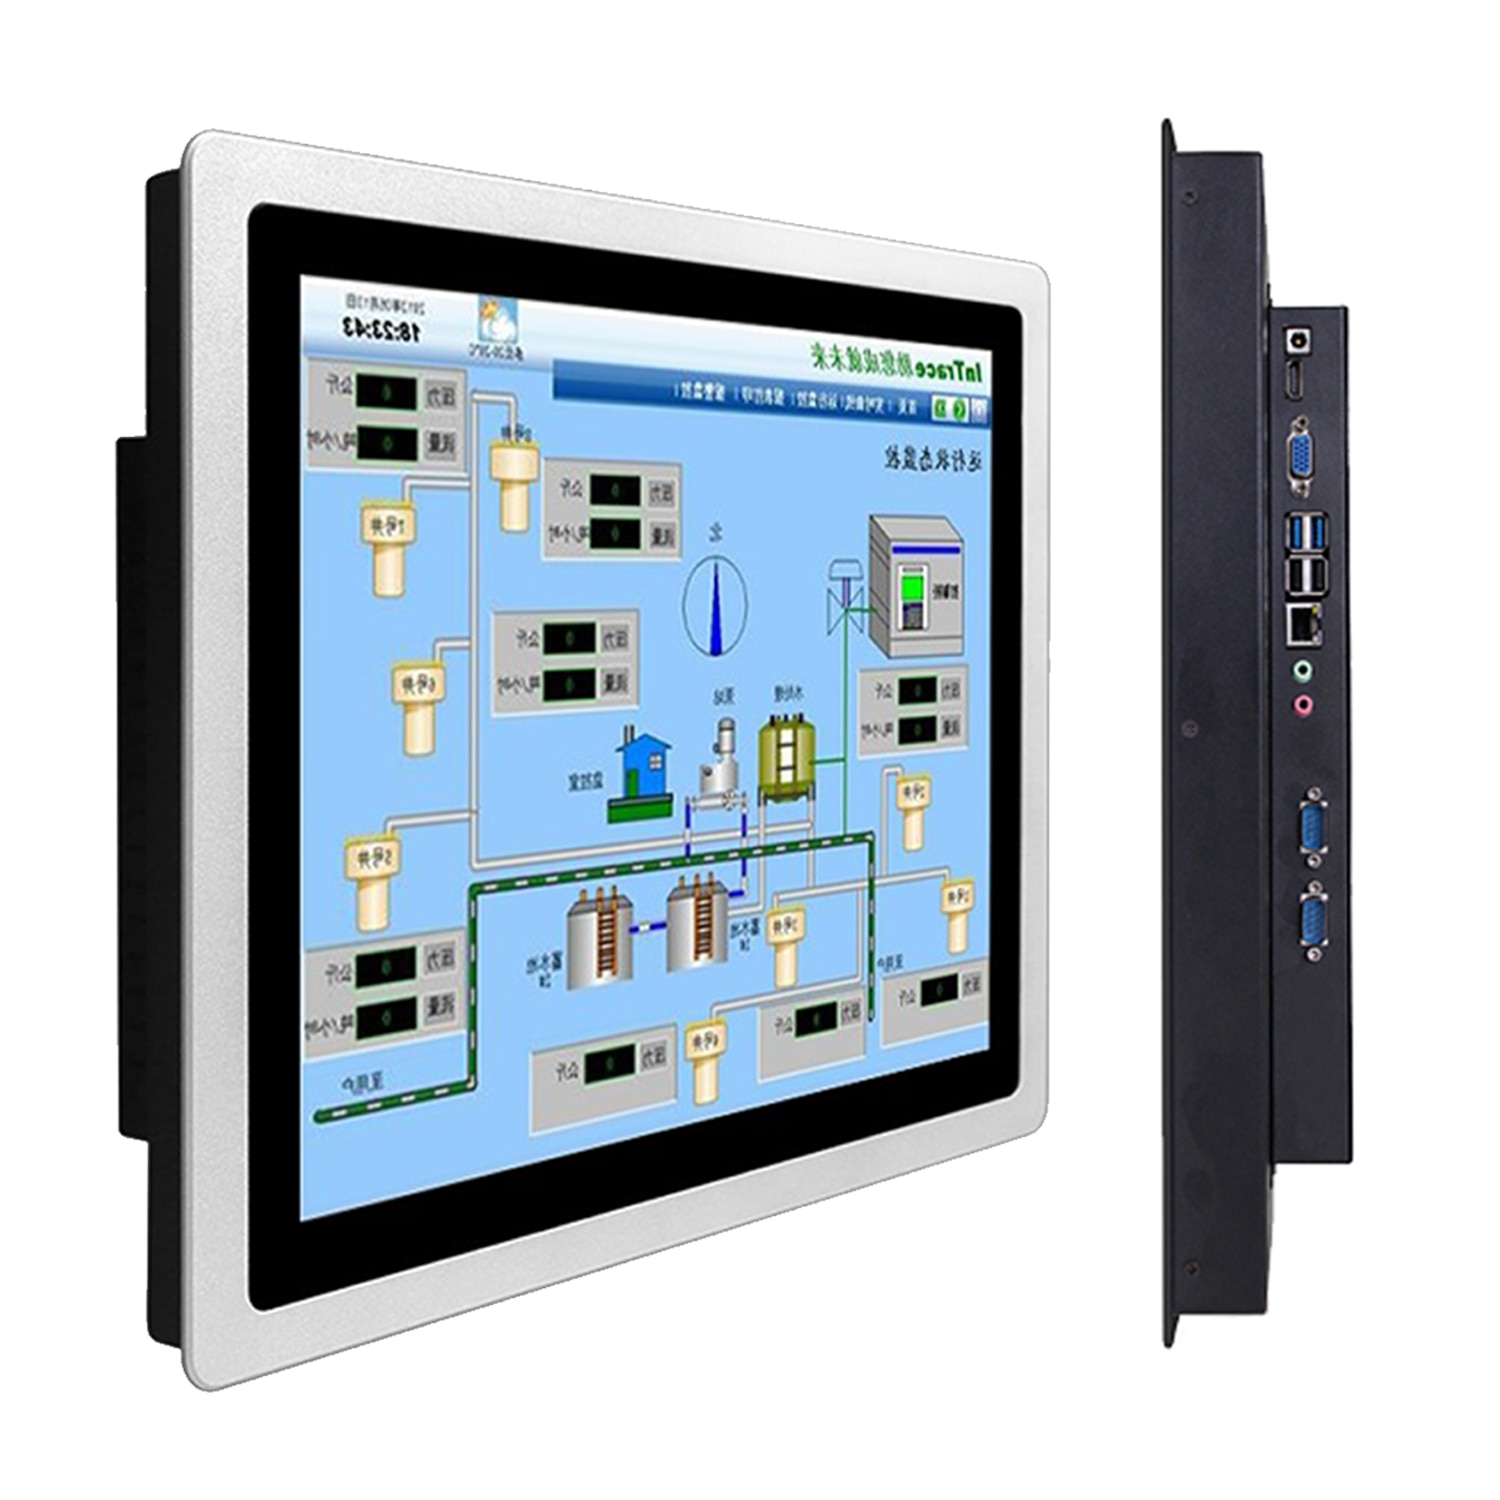 14 inch industrial all-in-one computer 15.6 inch Tablet Panel MINI PC with capacitive touch screen Windows 10 PRO